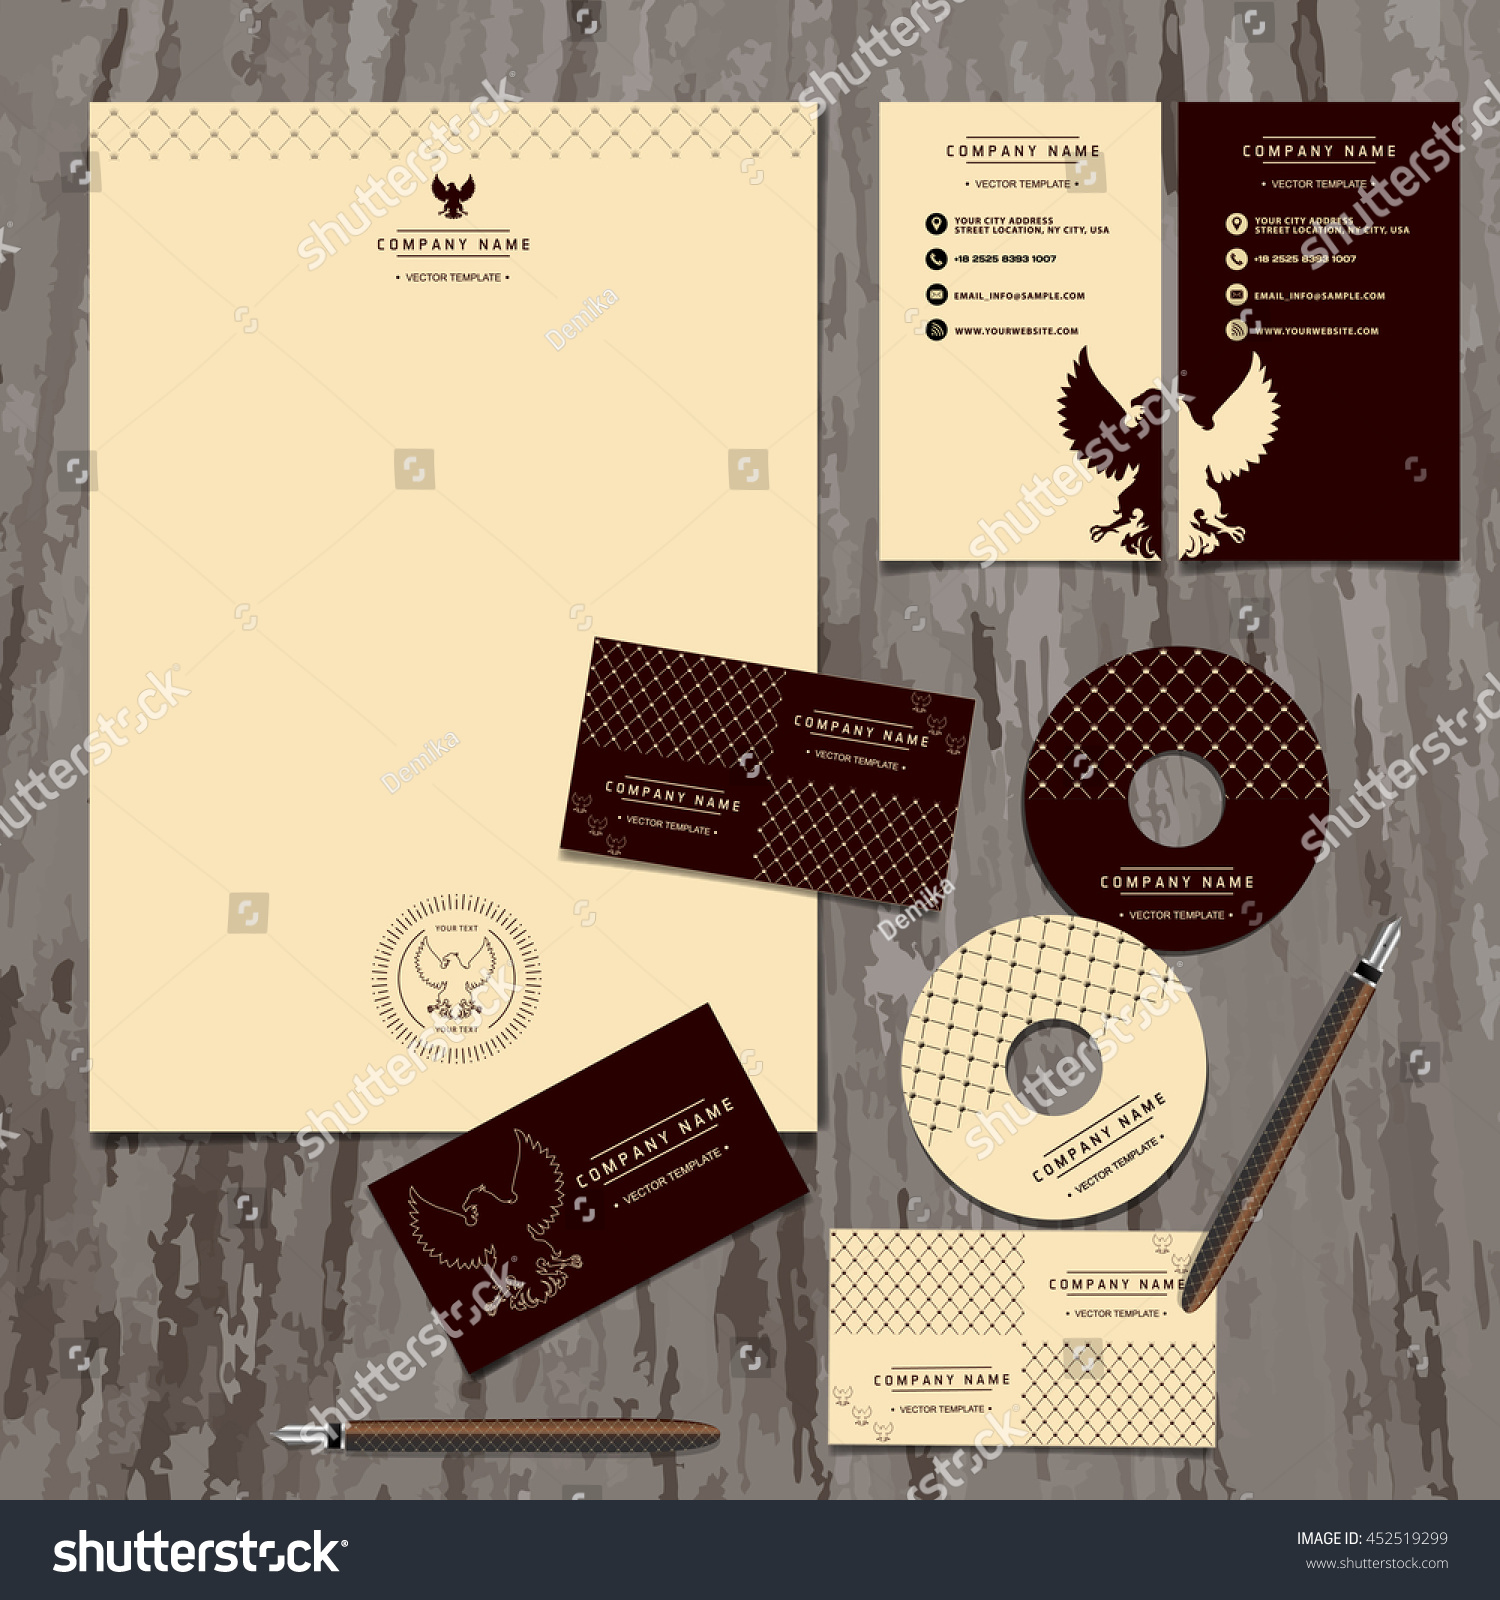 Brand Book Business Cards Logo Corporate Stock Vector 452519299 ...